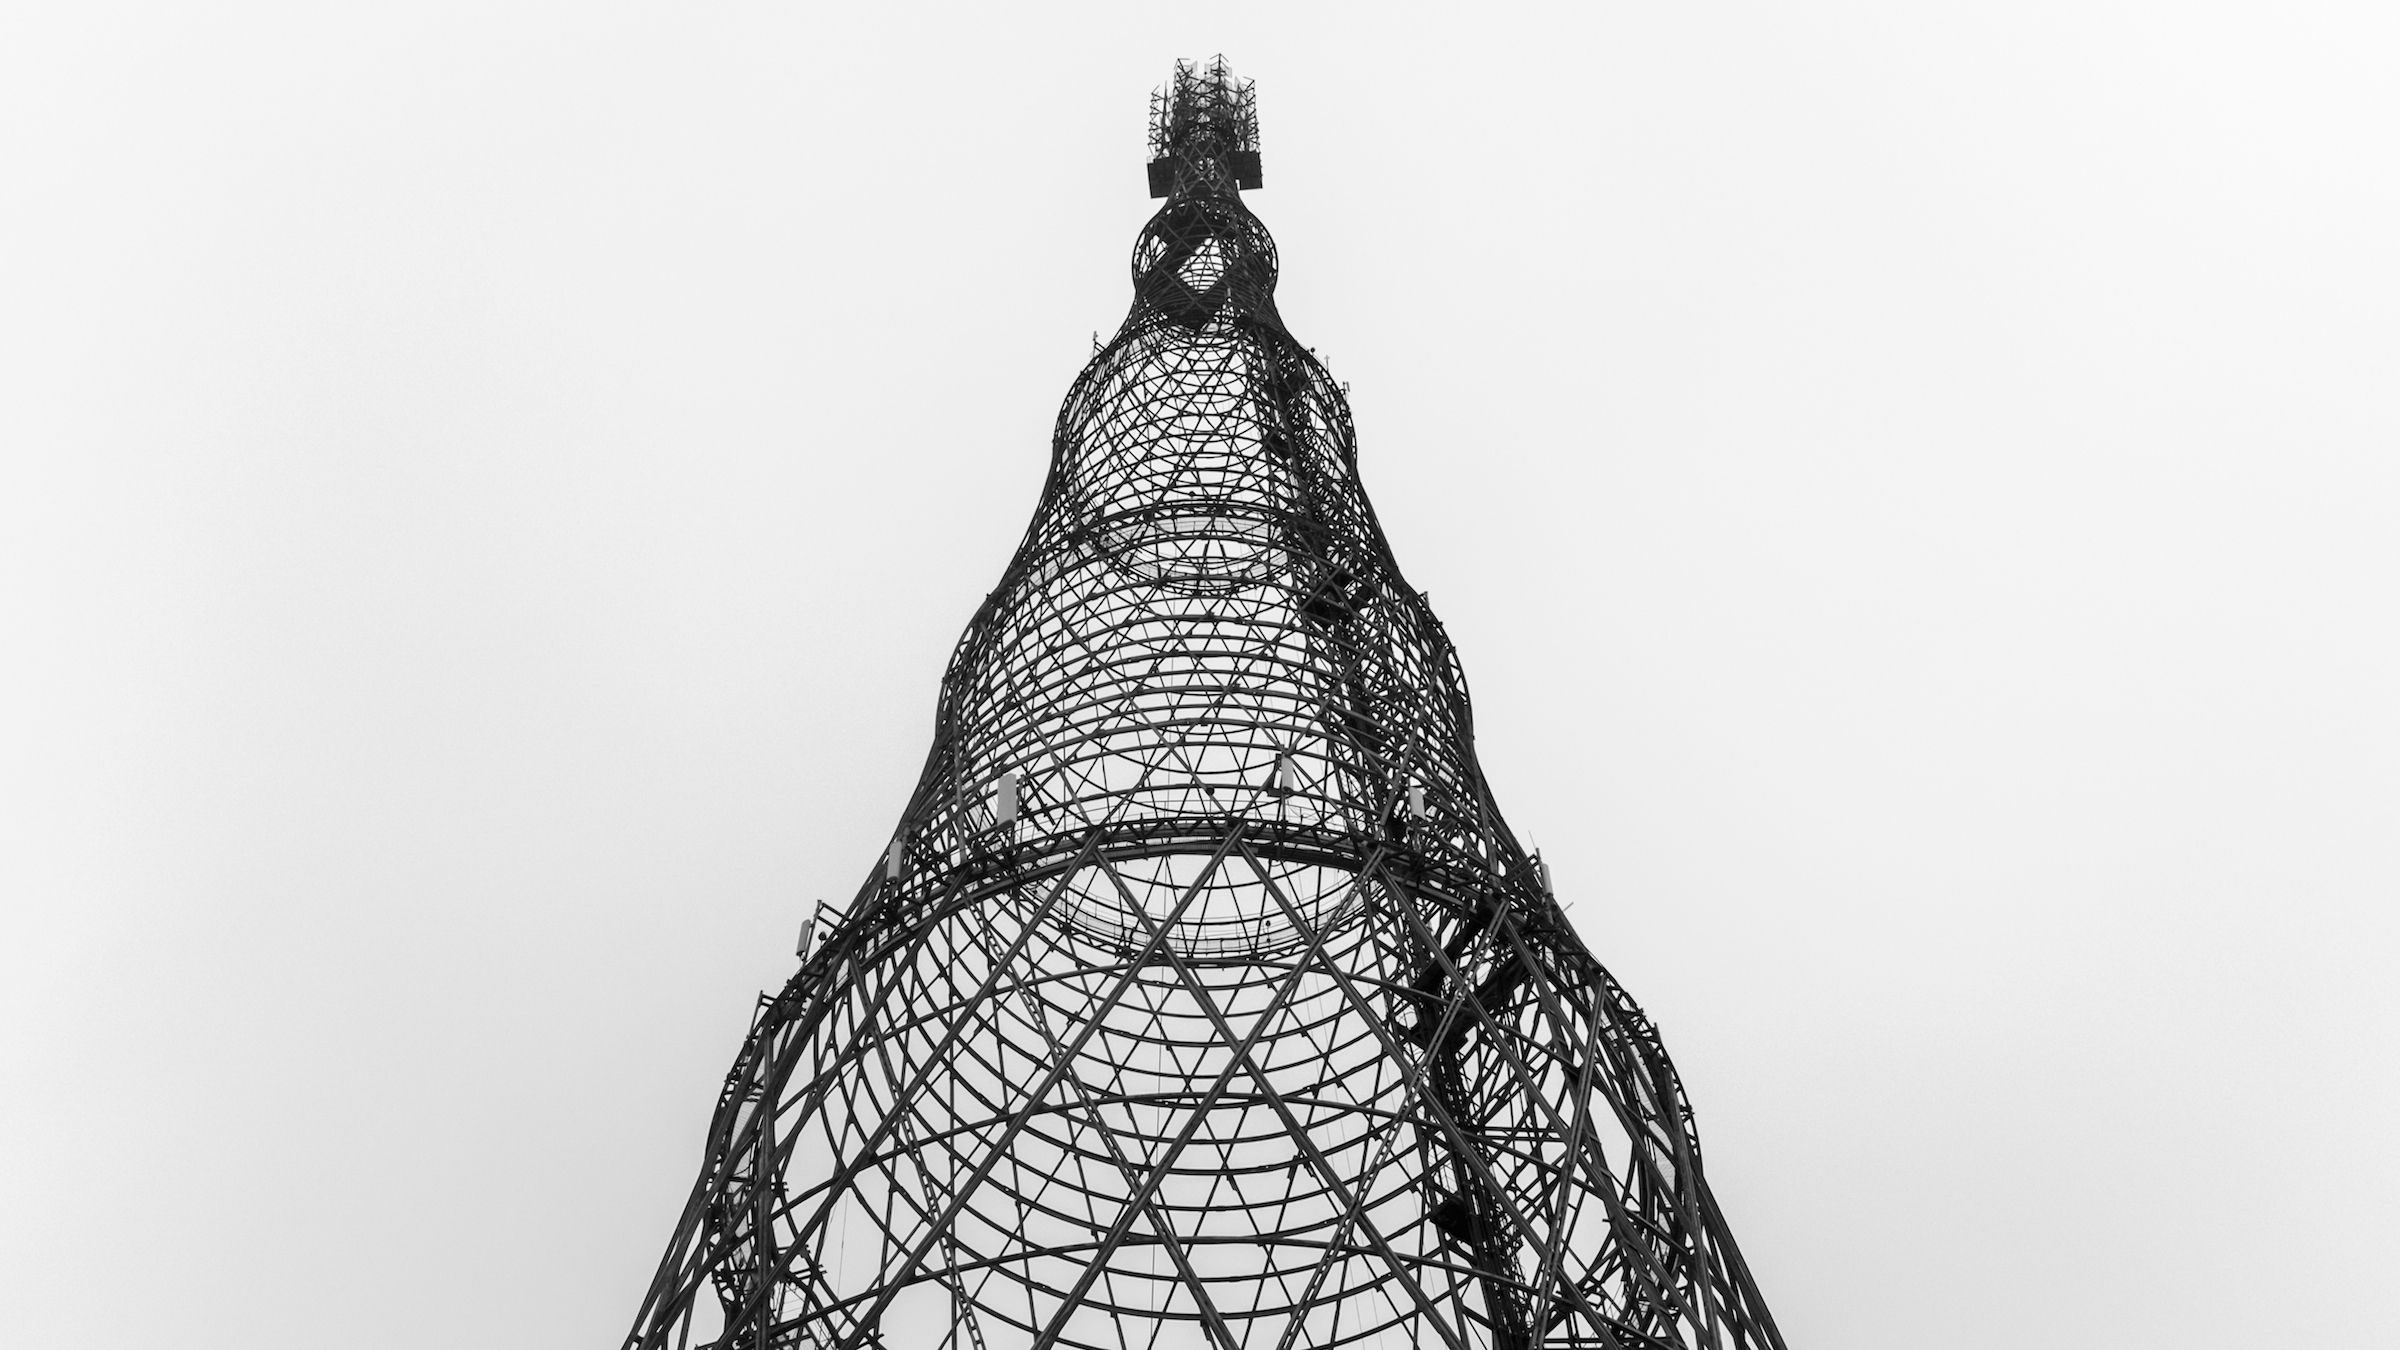 Photograph of Moscow's threatened icon the Shukhov tower